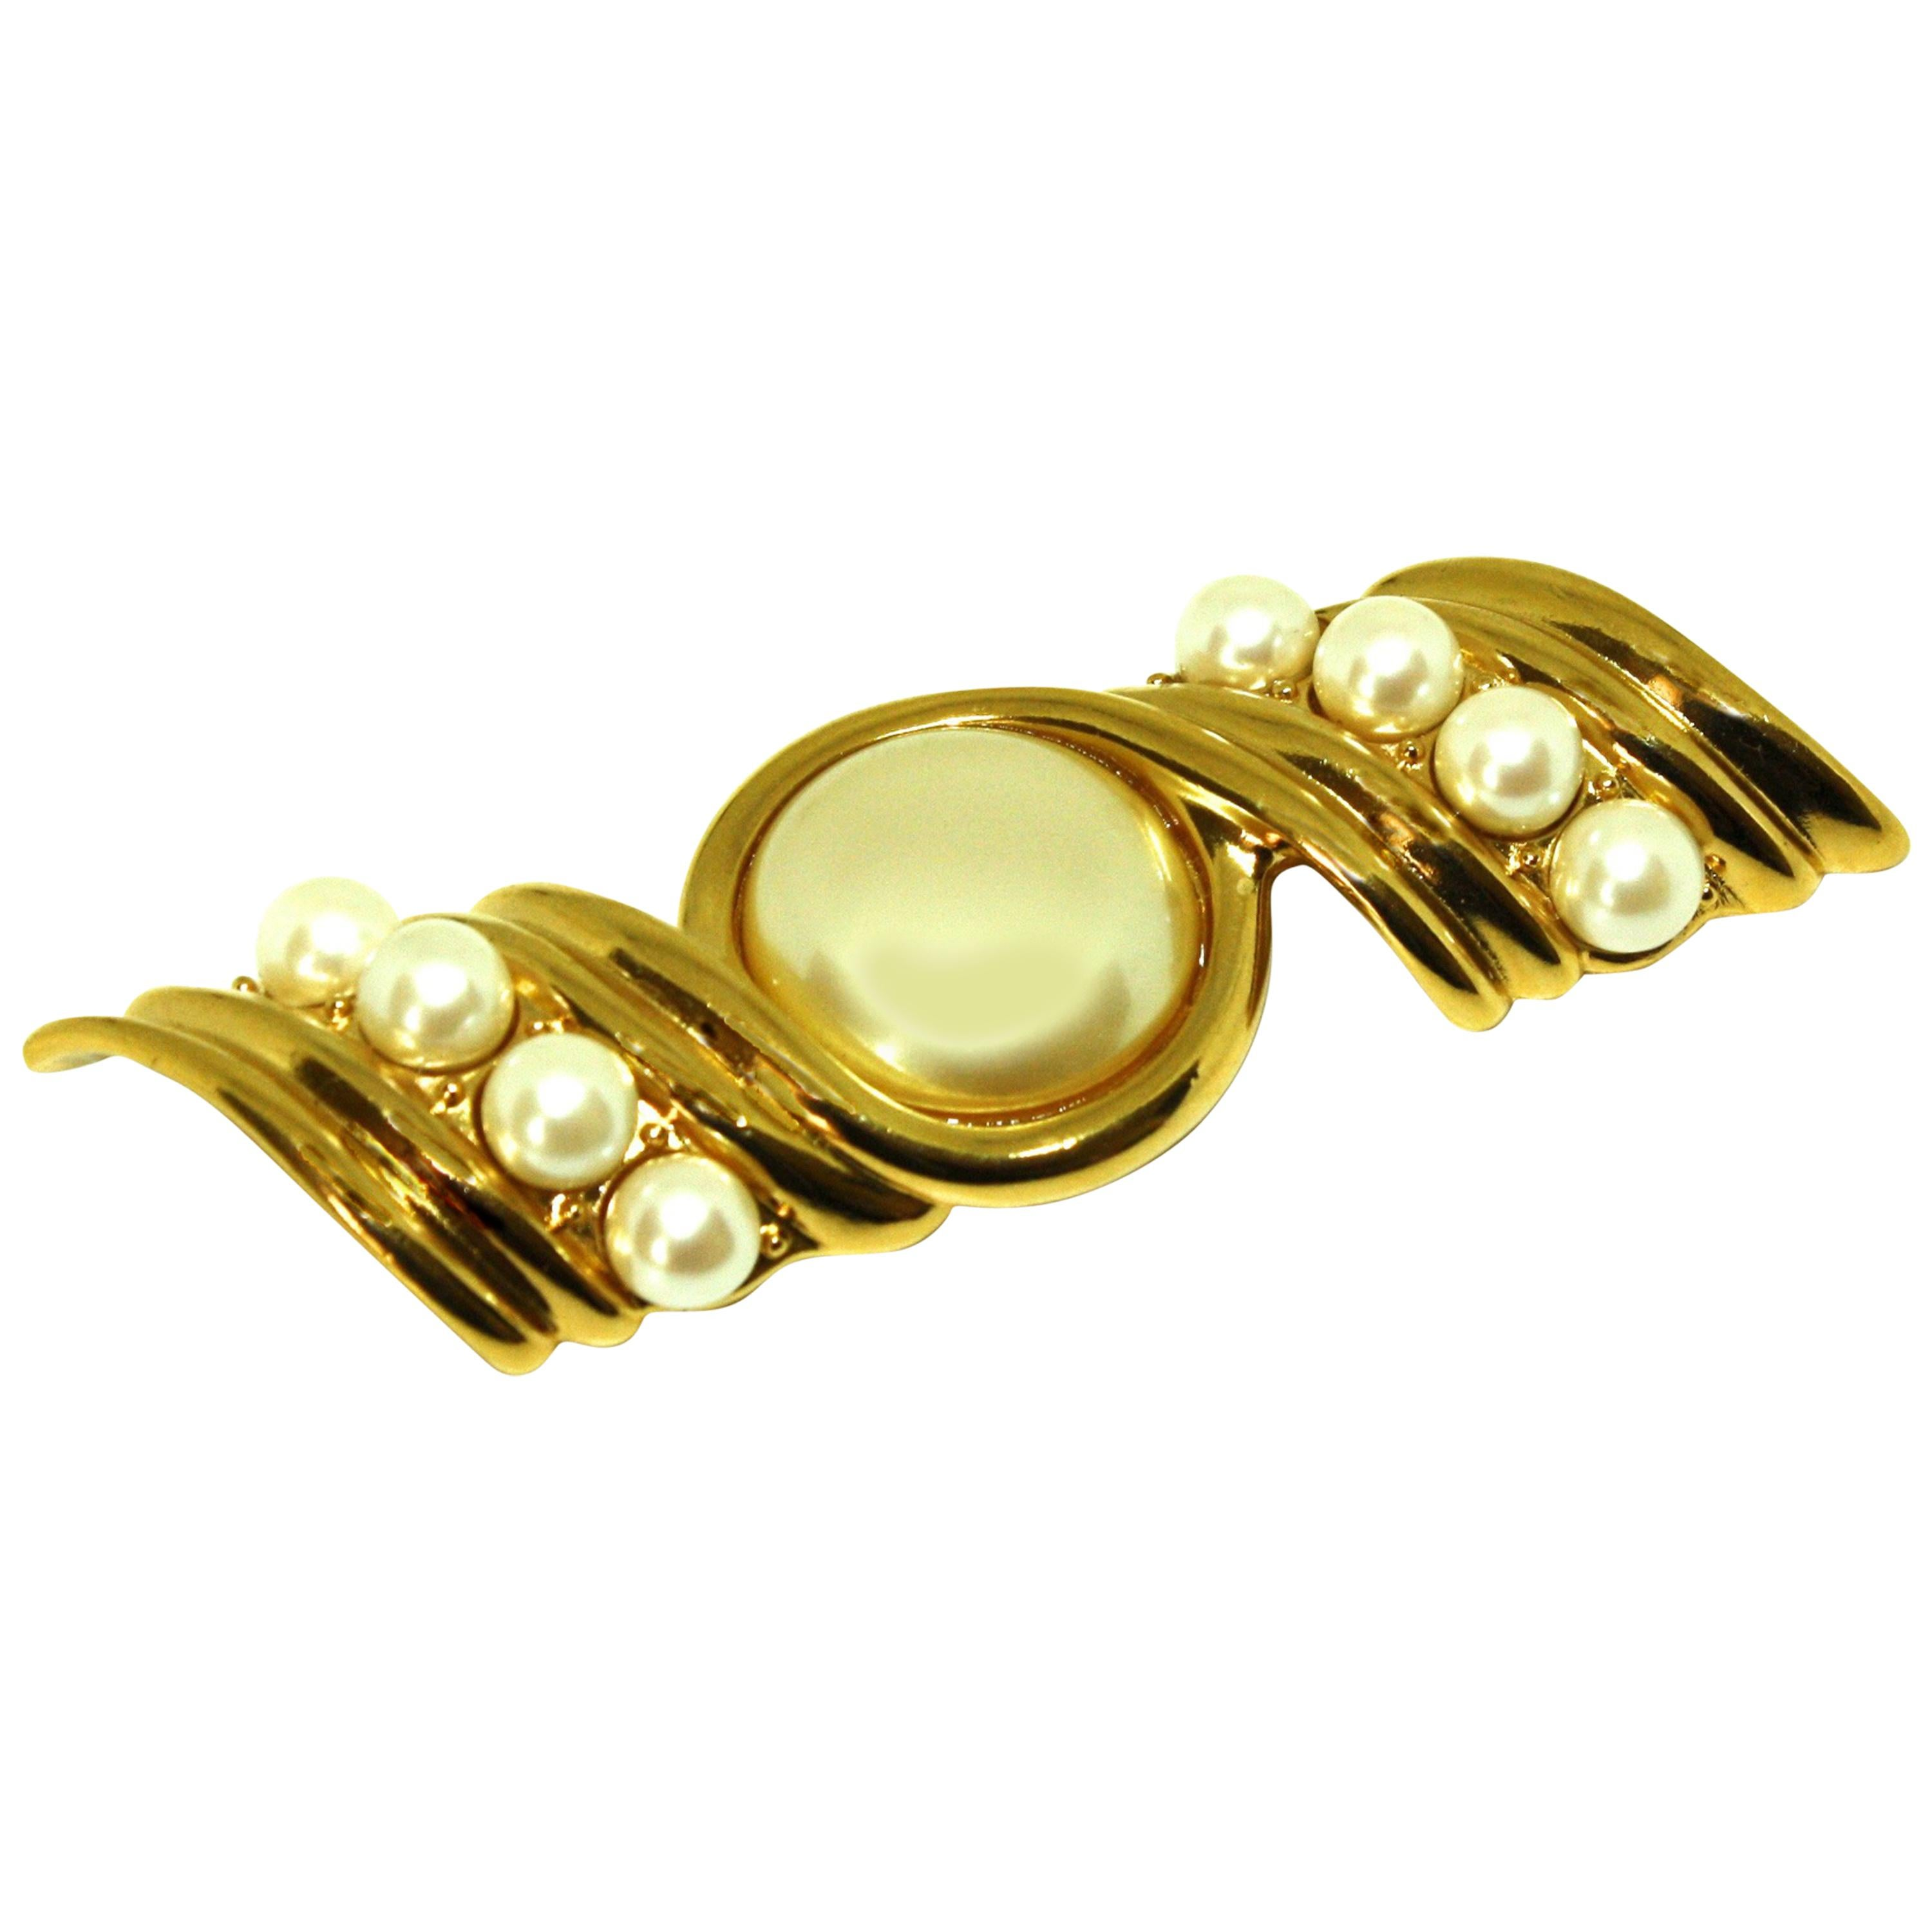 24f5d1ade18 Vintage Yves Saint Laurent Brooches - 54 For Sale at 1stdibs